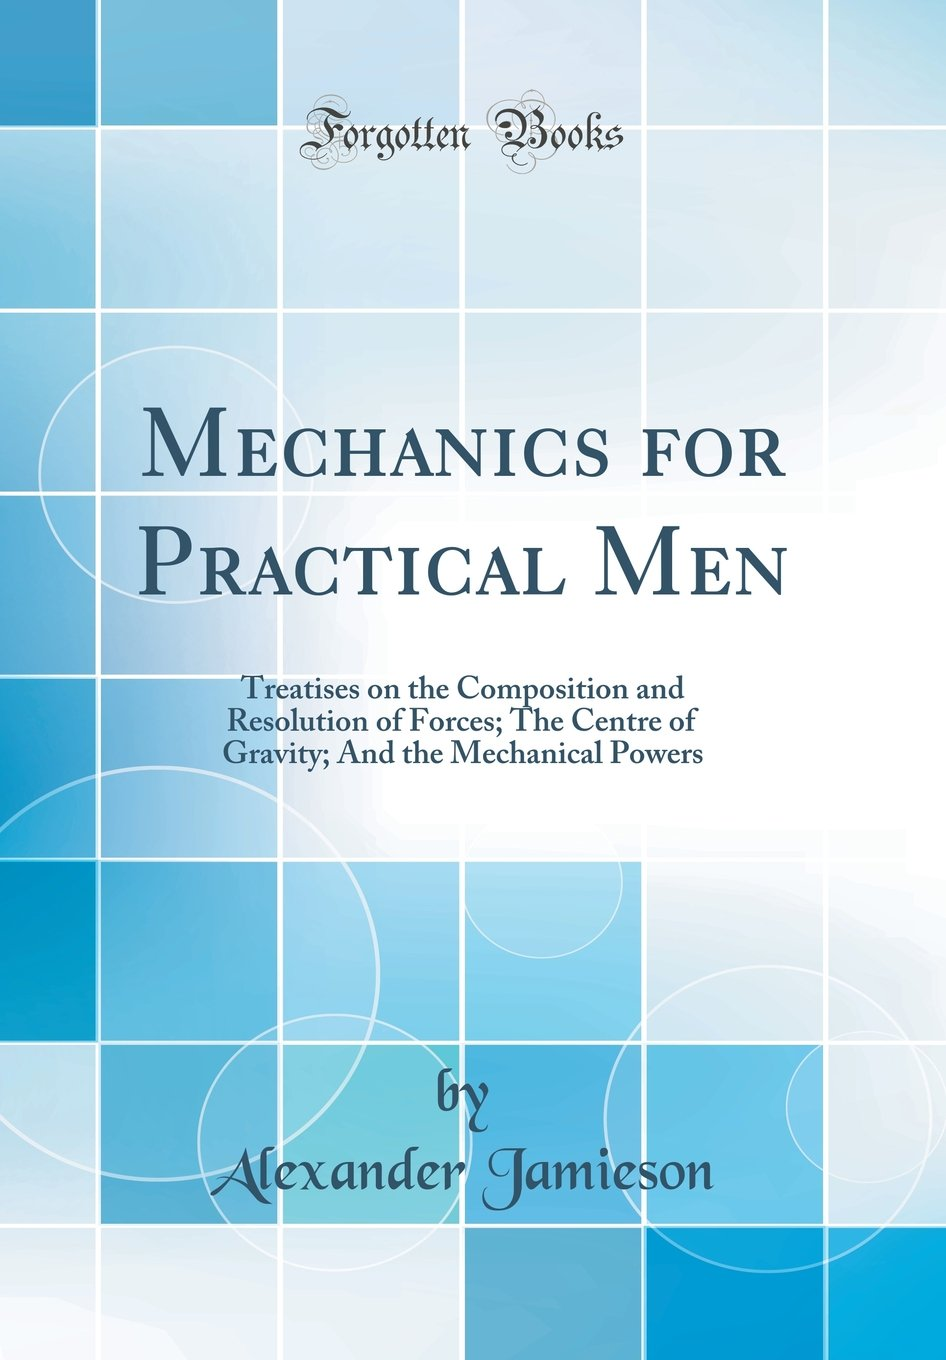 Mechanics for Practical Men: Treatises on the Composition and Resolution of Forces; The Centre of Gravity; And the Mechanical Powers (Classic Reprint) ebook